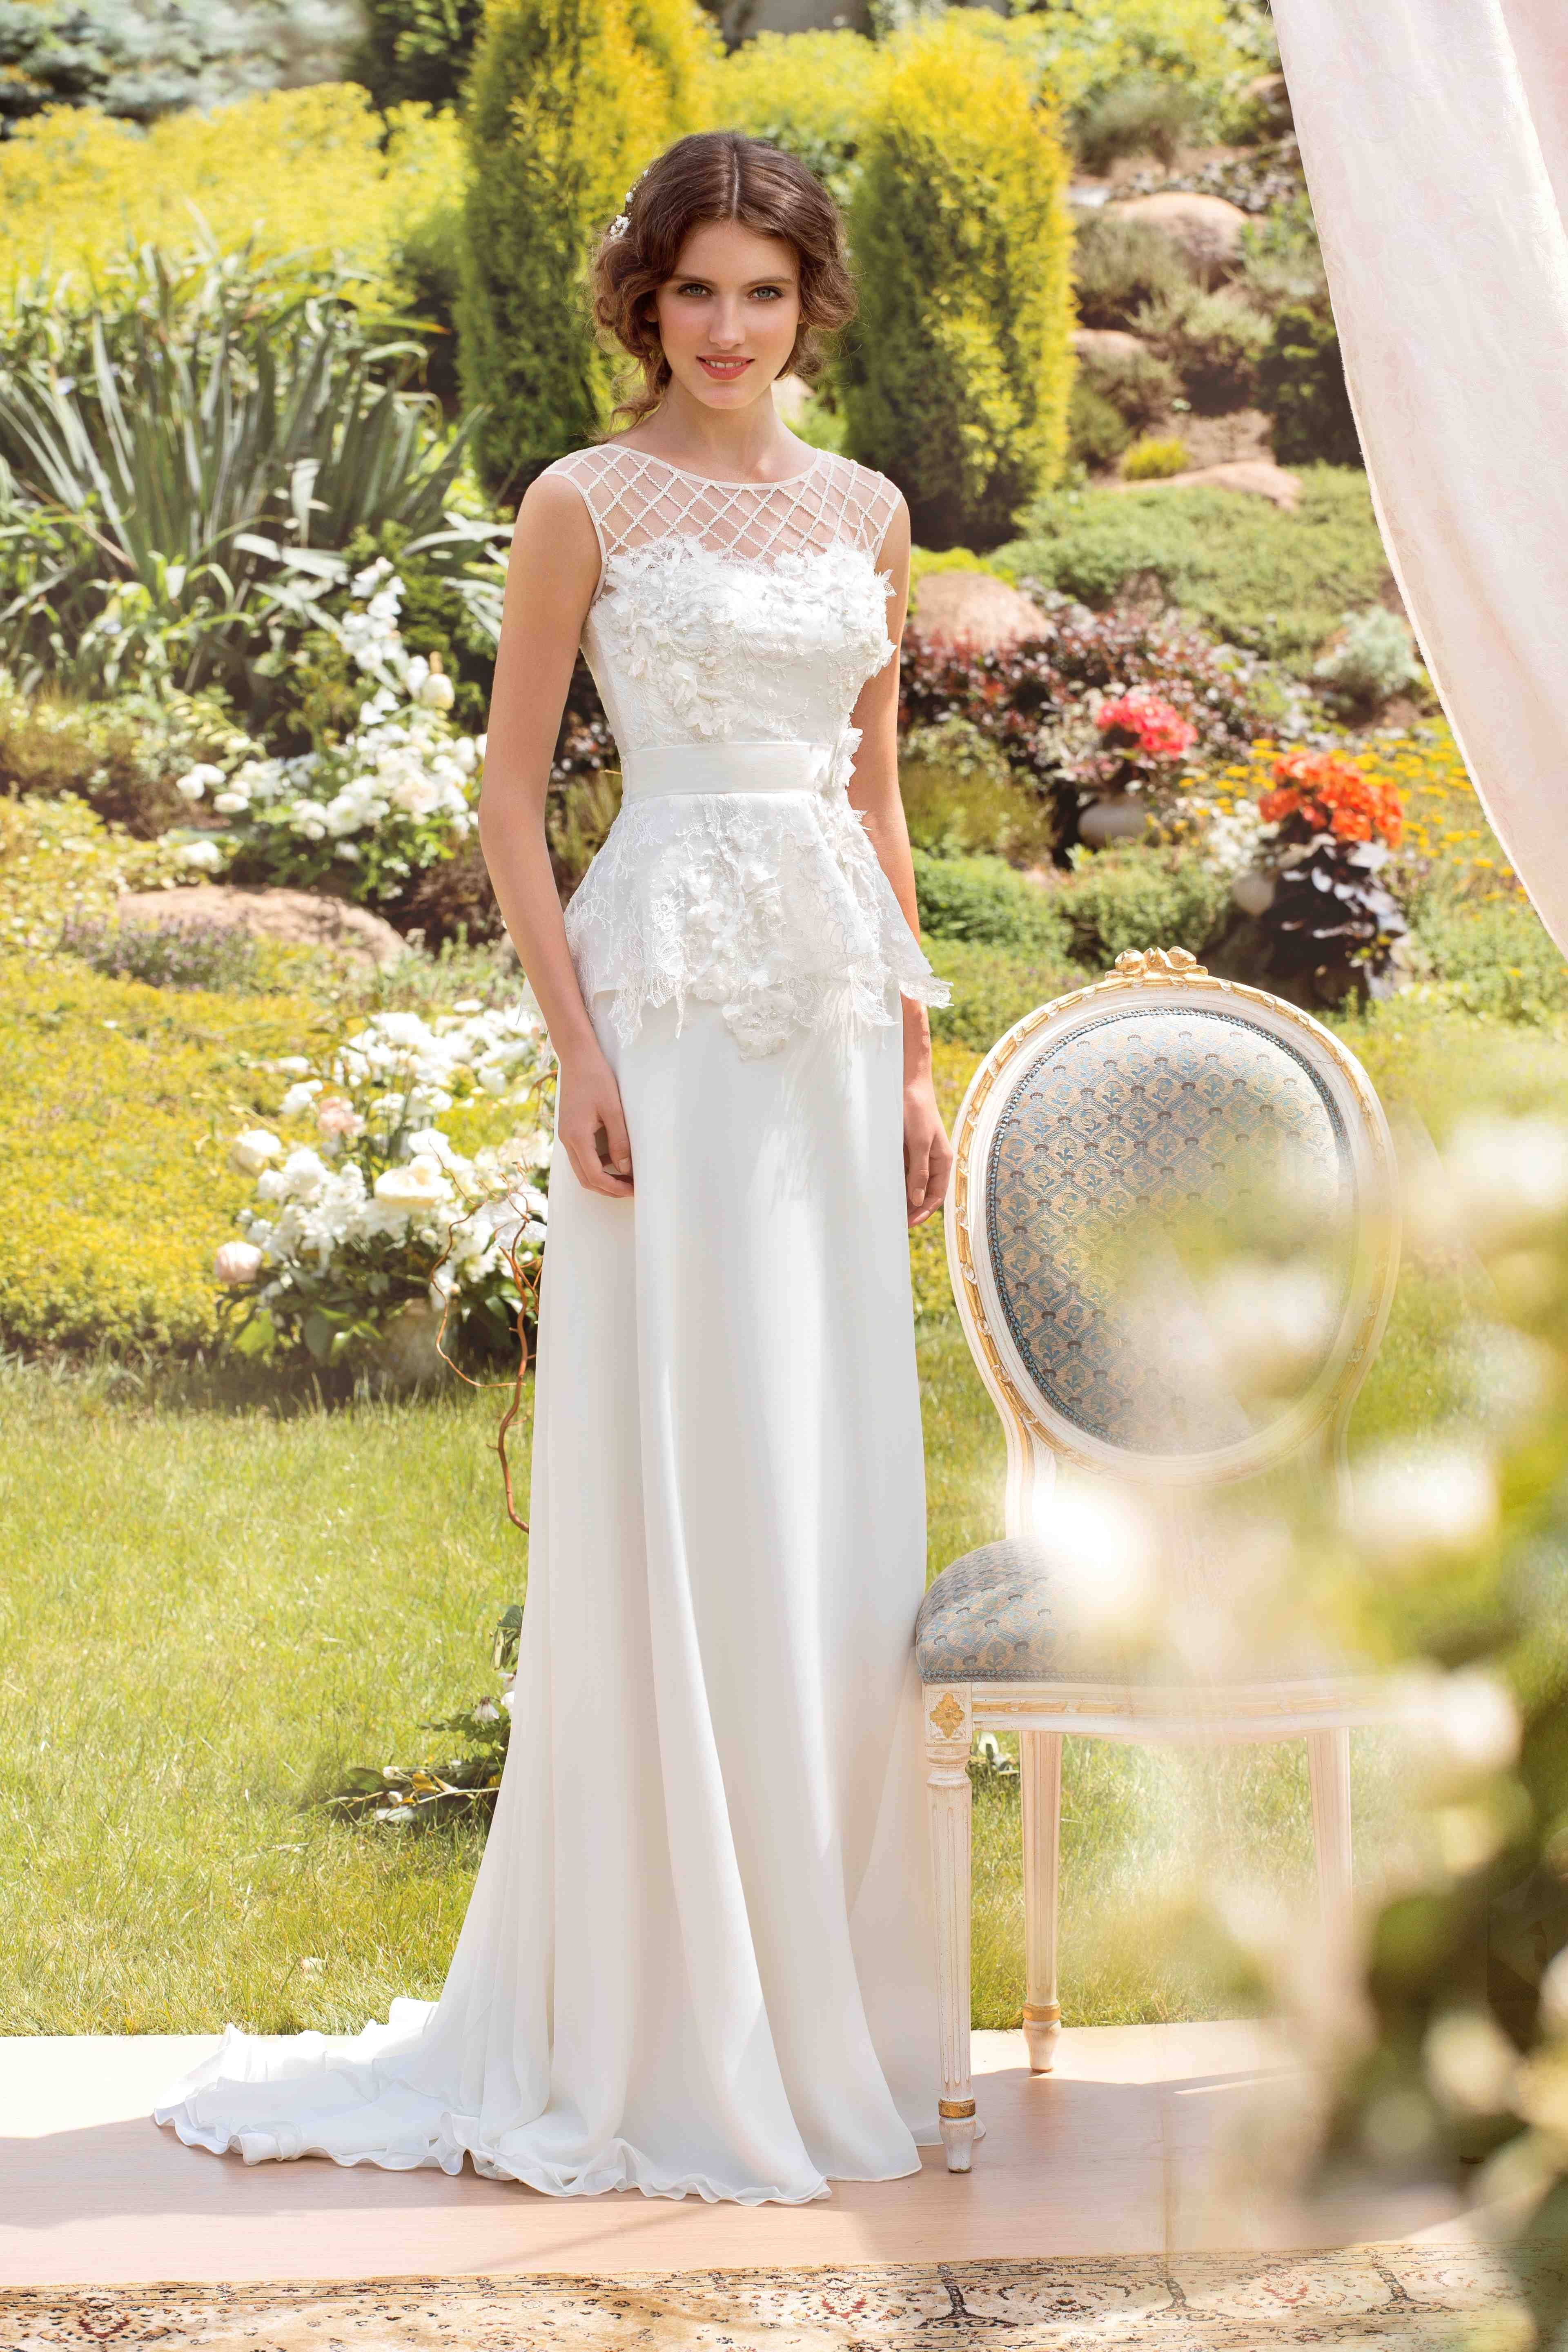 Cap sleeve peplum wedding gown with lace bodice and latticed